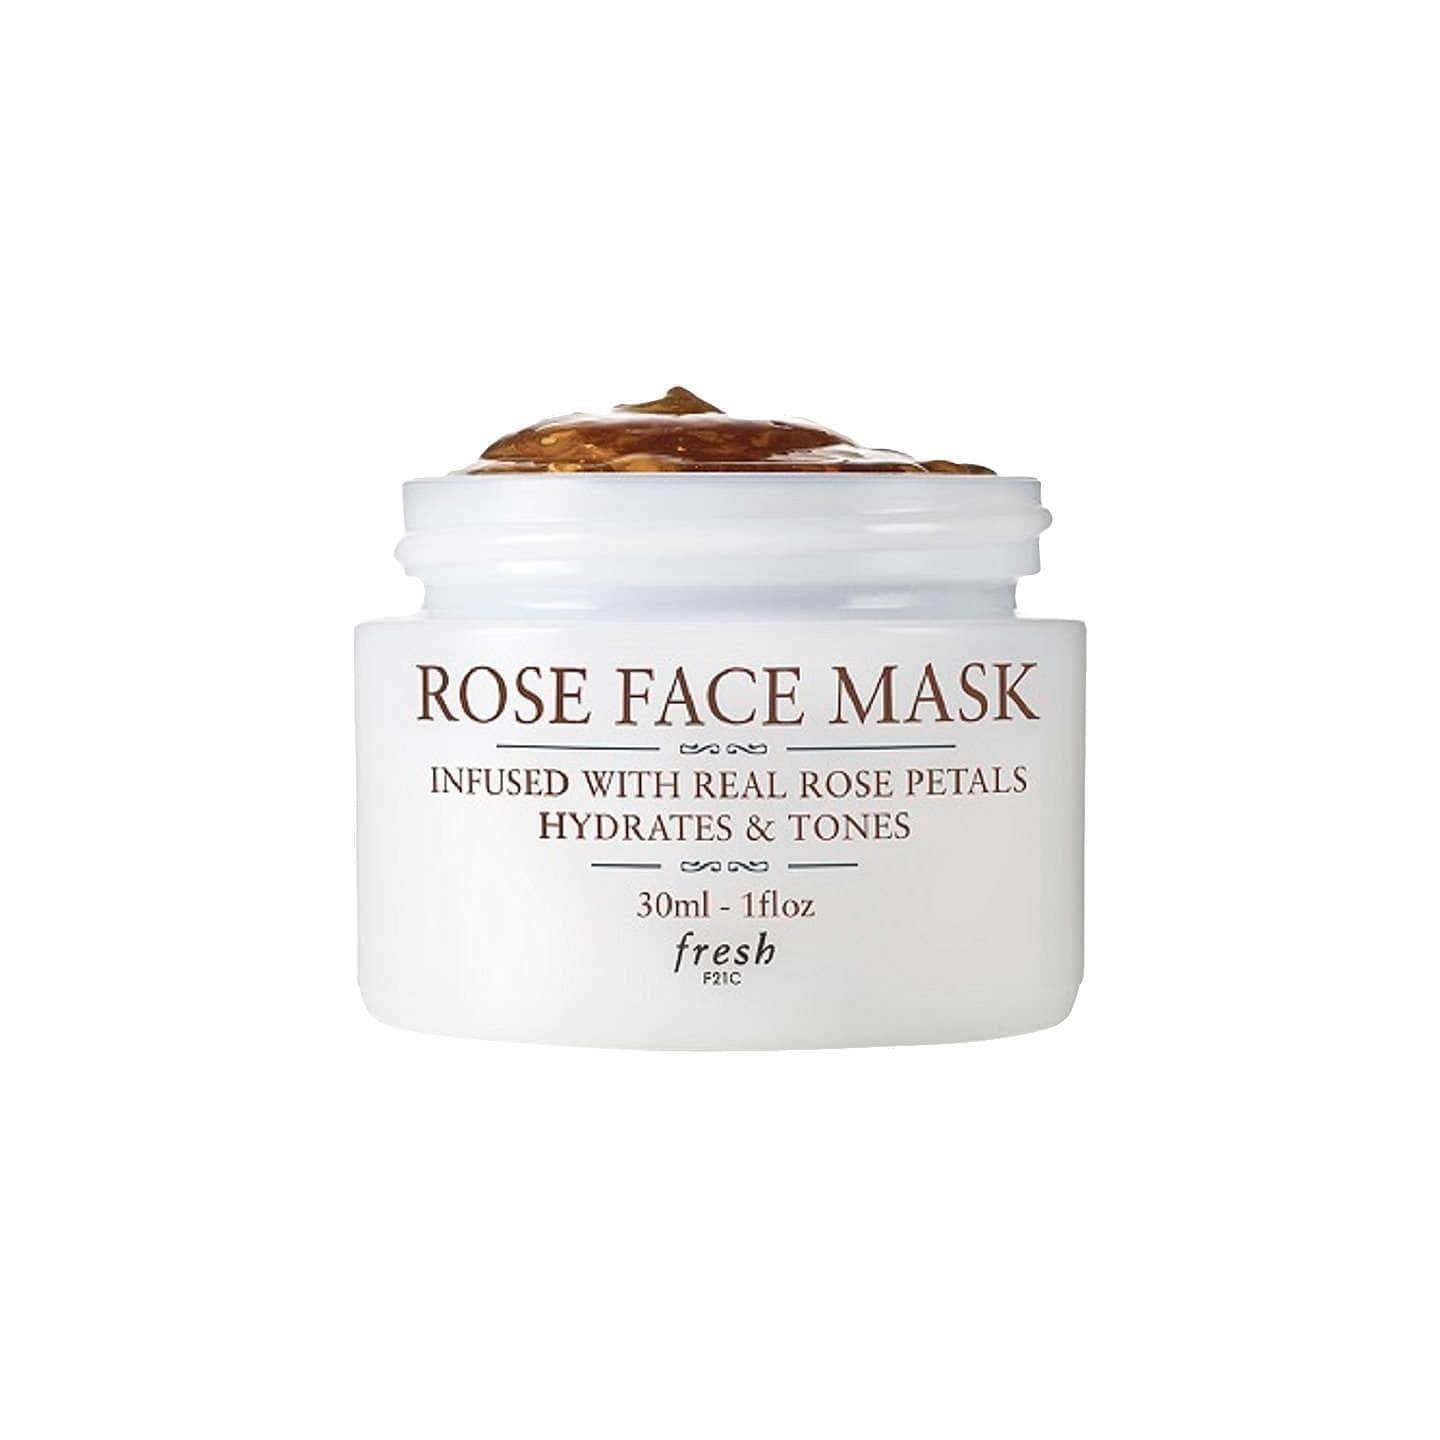 Fresh Rose Face Mask To Go, 30ml, Face Masks, London Loves Beauty